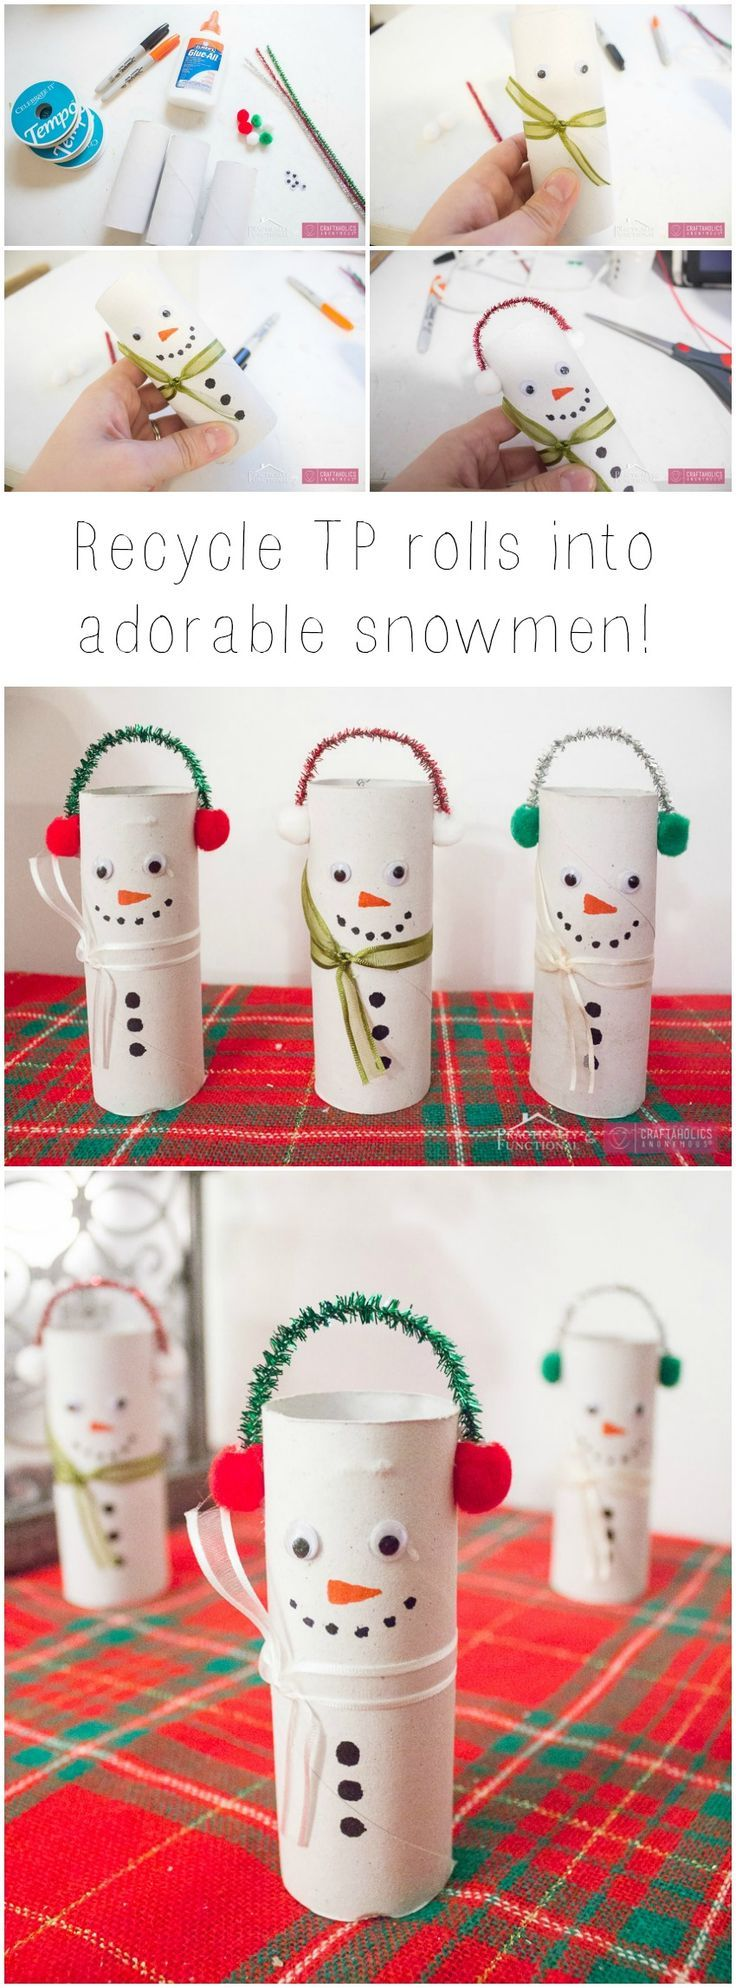 342 best Christmas Crafts images on Pinterest | Christmas ornaments ...